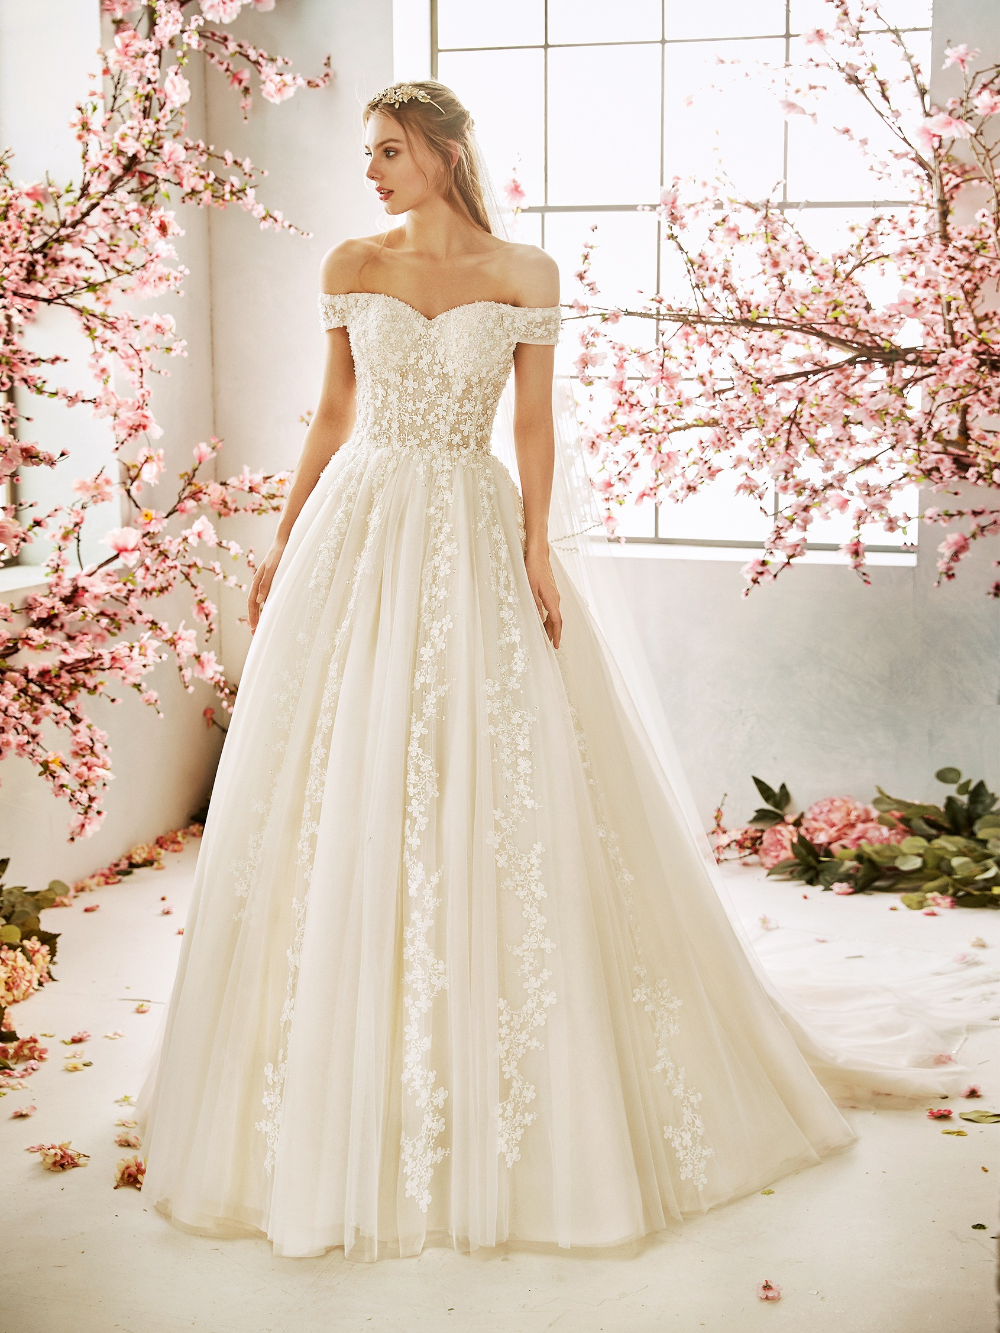 Sakura Handfasting Wedding La Sposa Wedding Dresses Short Wedding Dress Belle Wedding Dresses